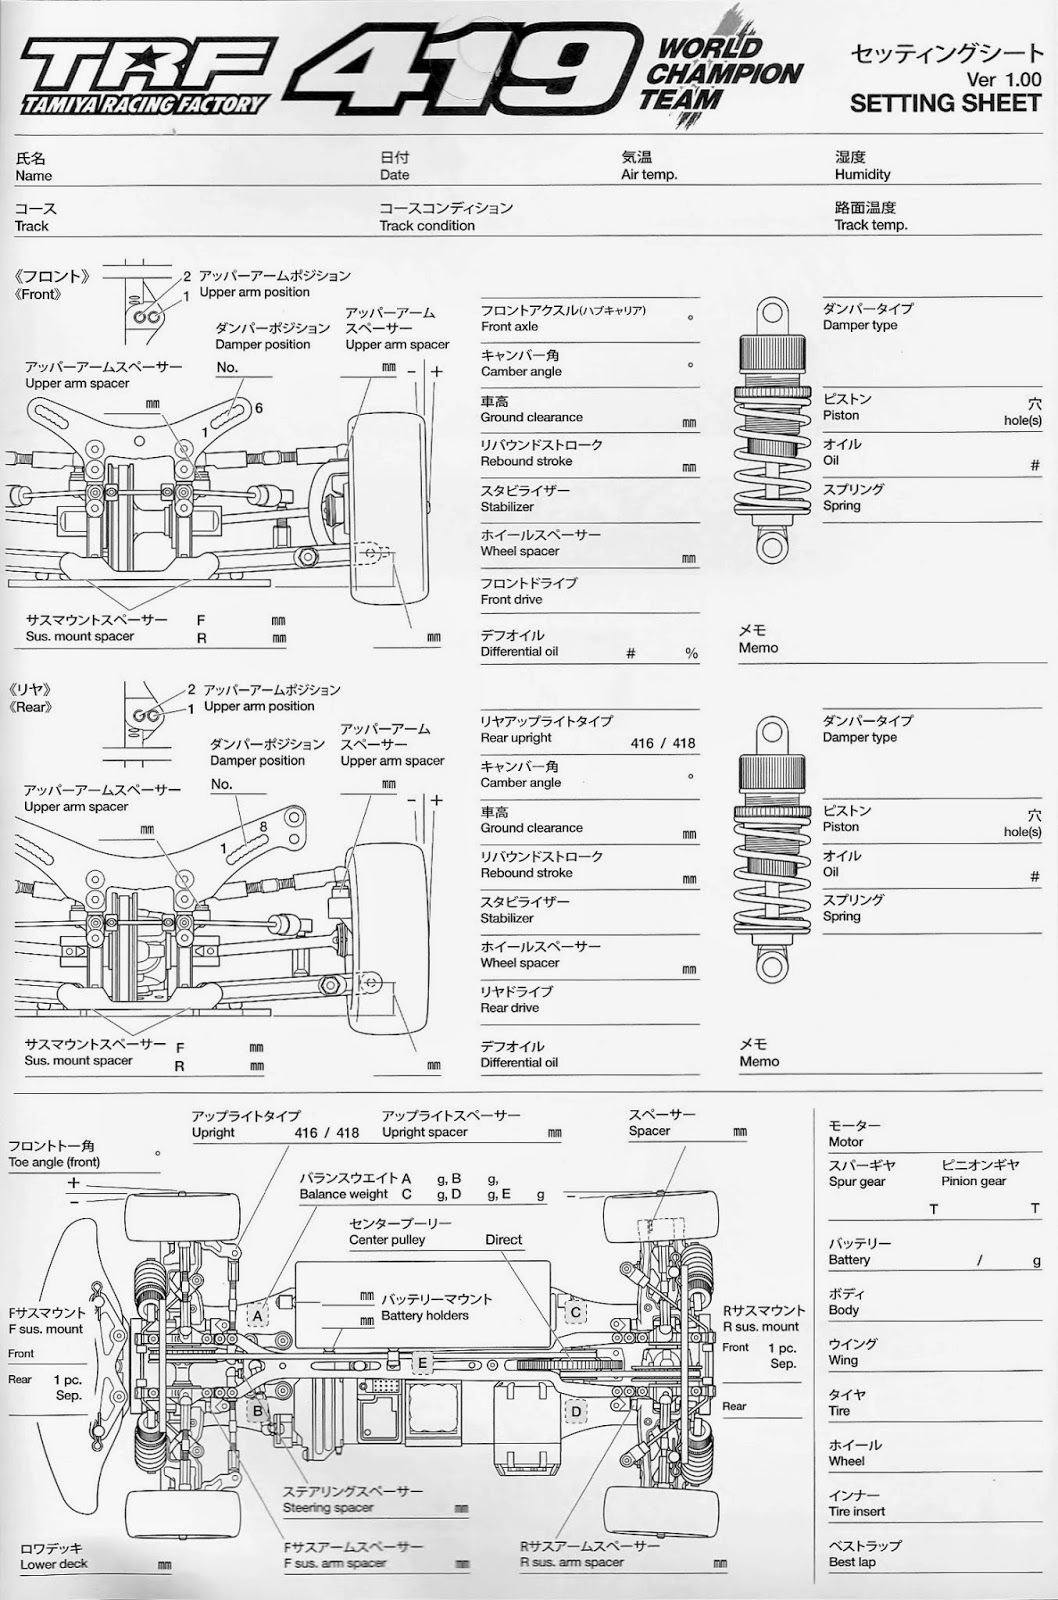 Trf419 Set Up Sheet And Parts Listing